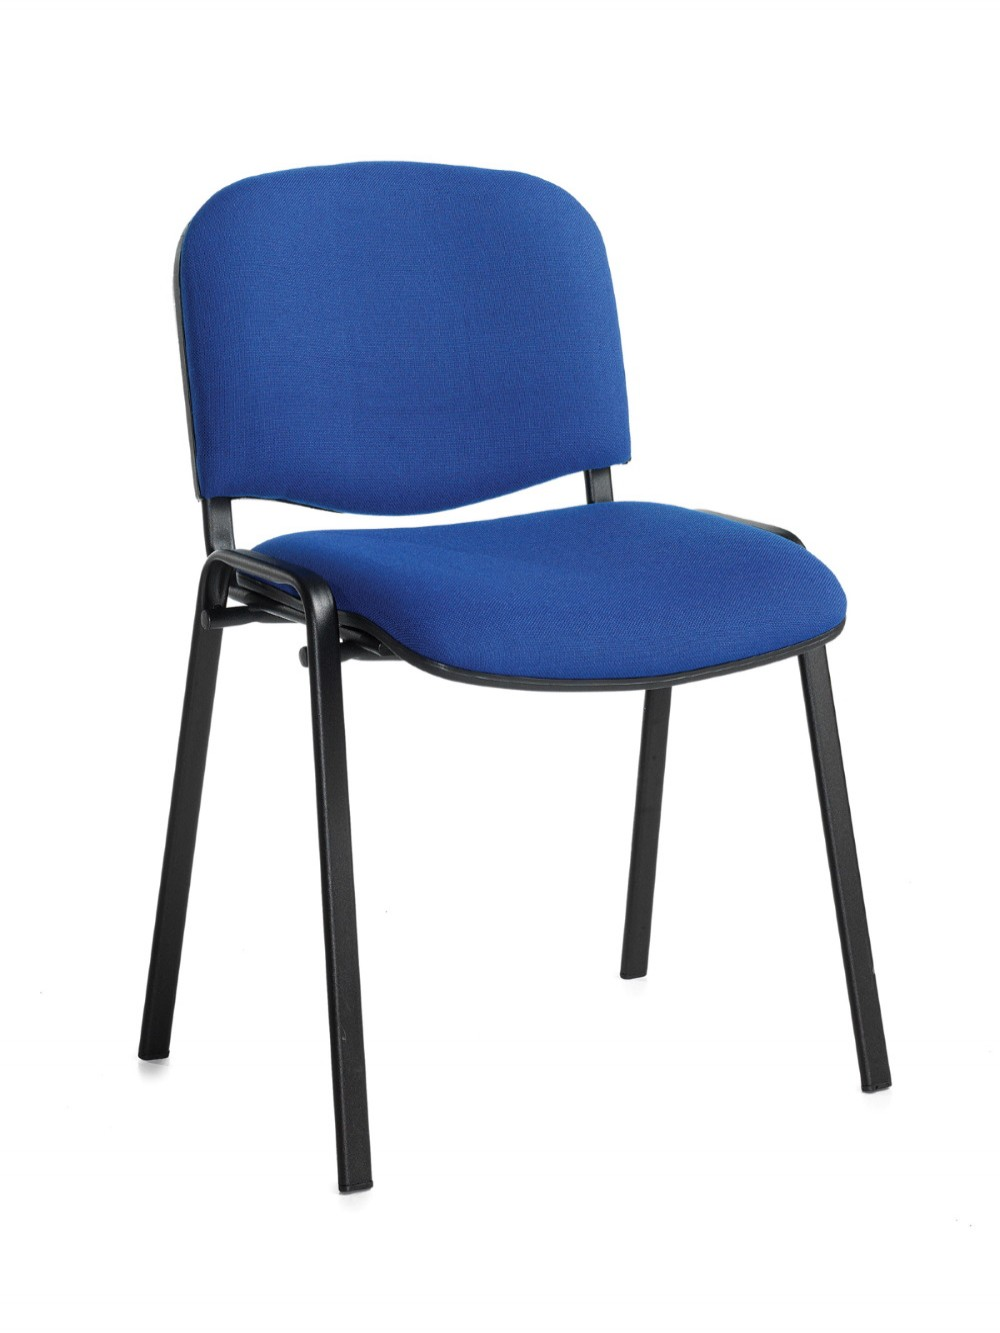 4 Pack of Stacking Chairs Taurus Mesh Back Meeting Chairs TAU40002 BOXTAU2 by Dams